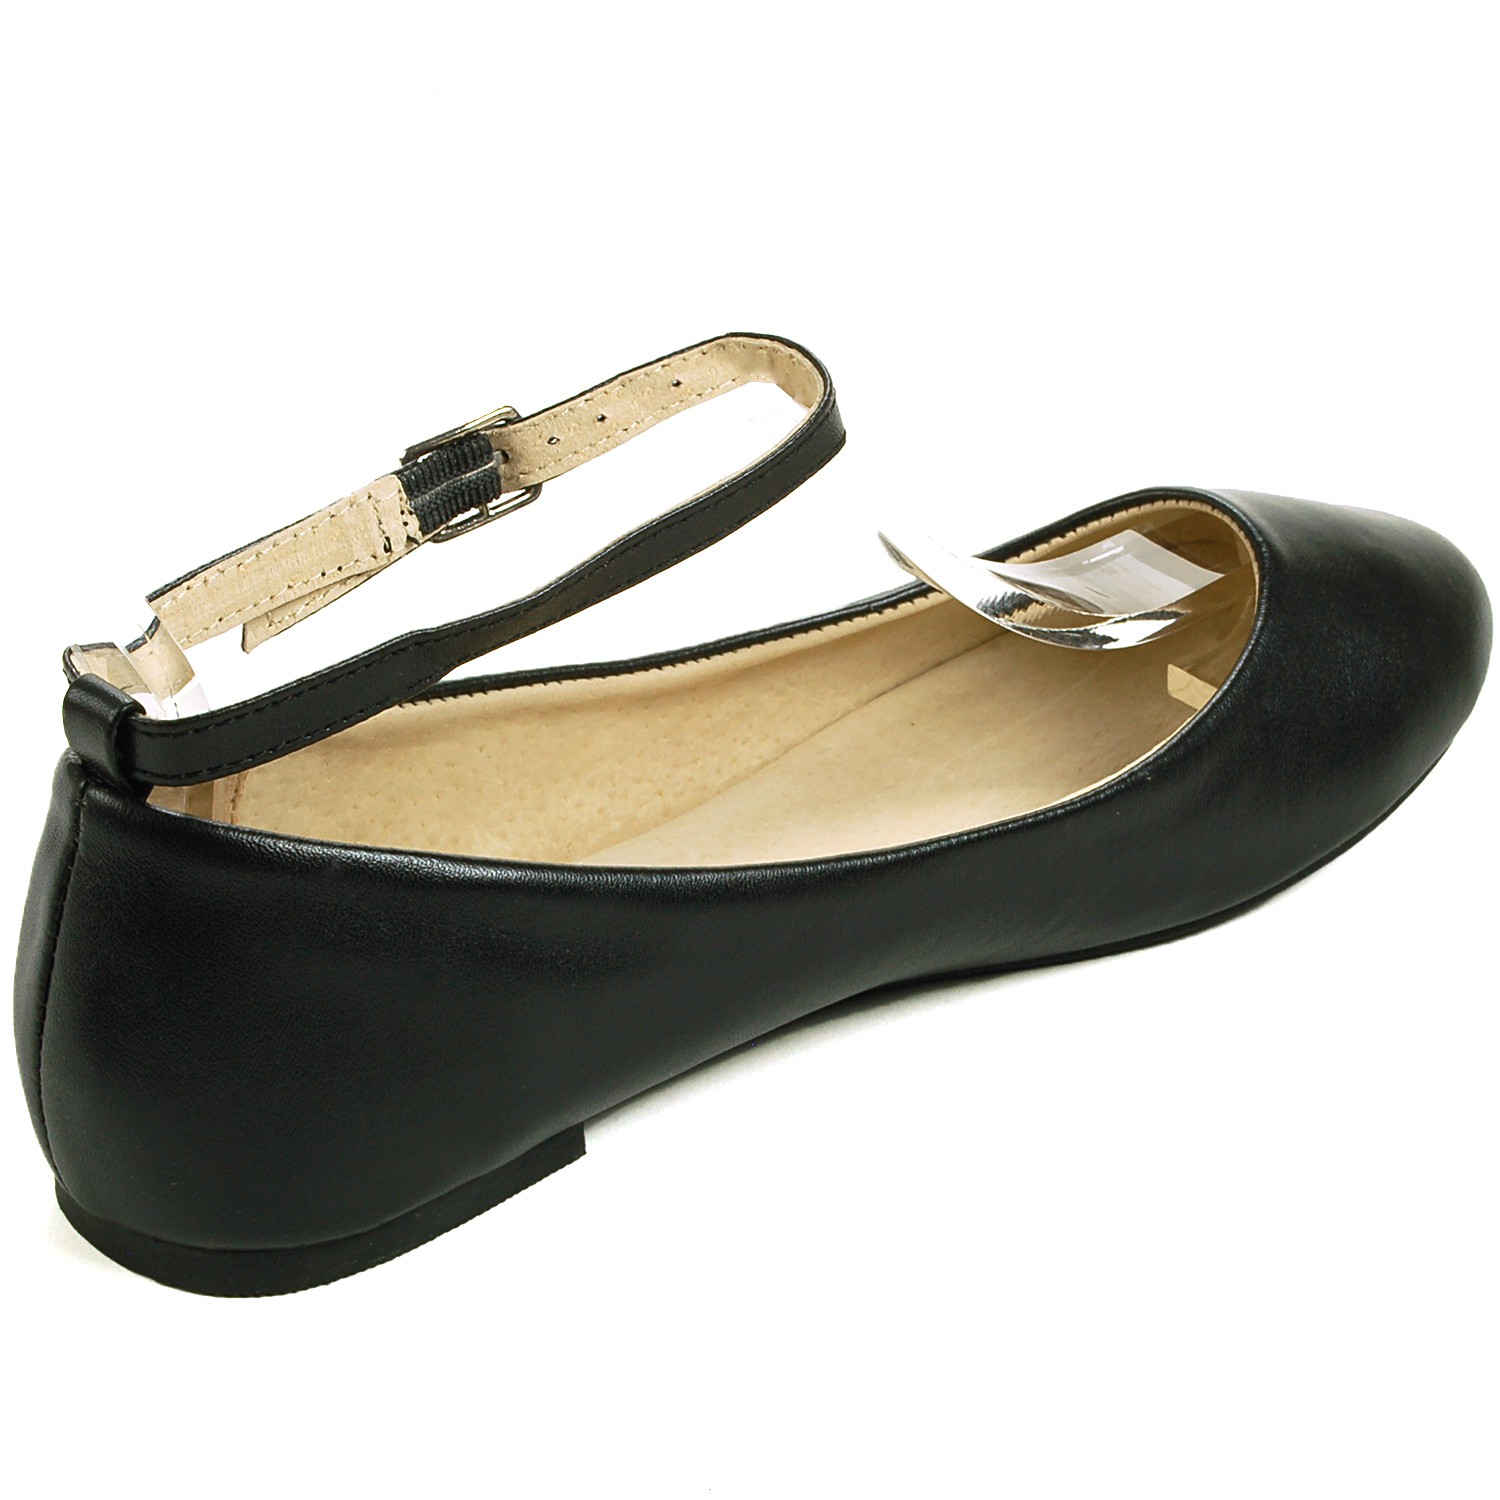 Ankle Strap Ballet Flats. Classic Ballet Flat with Removable Ankle Strap. Round Toe, Easy Slip-On & Slip-Off Flats. Classic Ballet Flat with Removable Ankle Strap for 2 Looks in